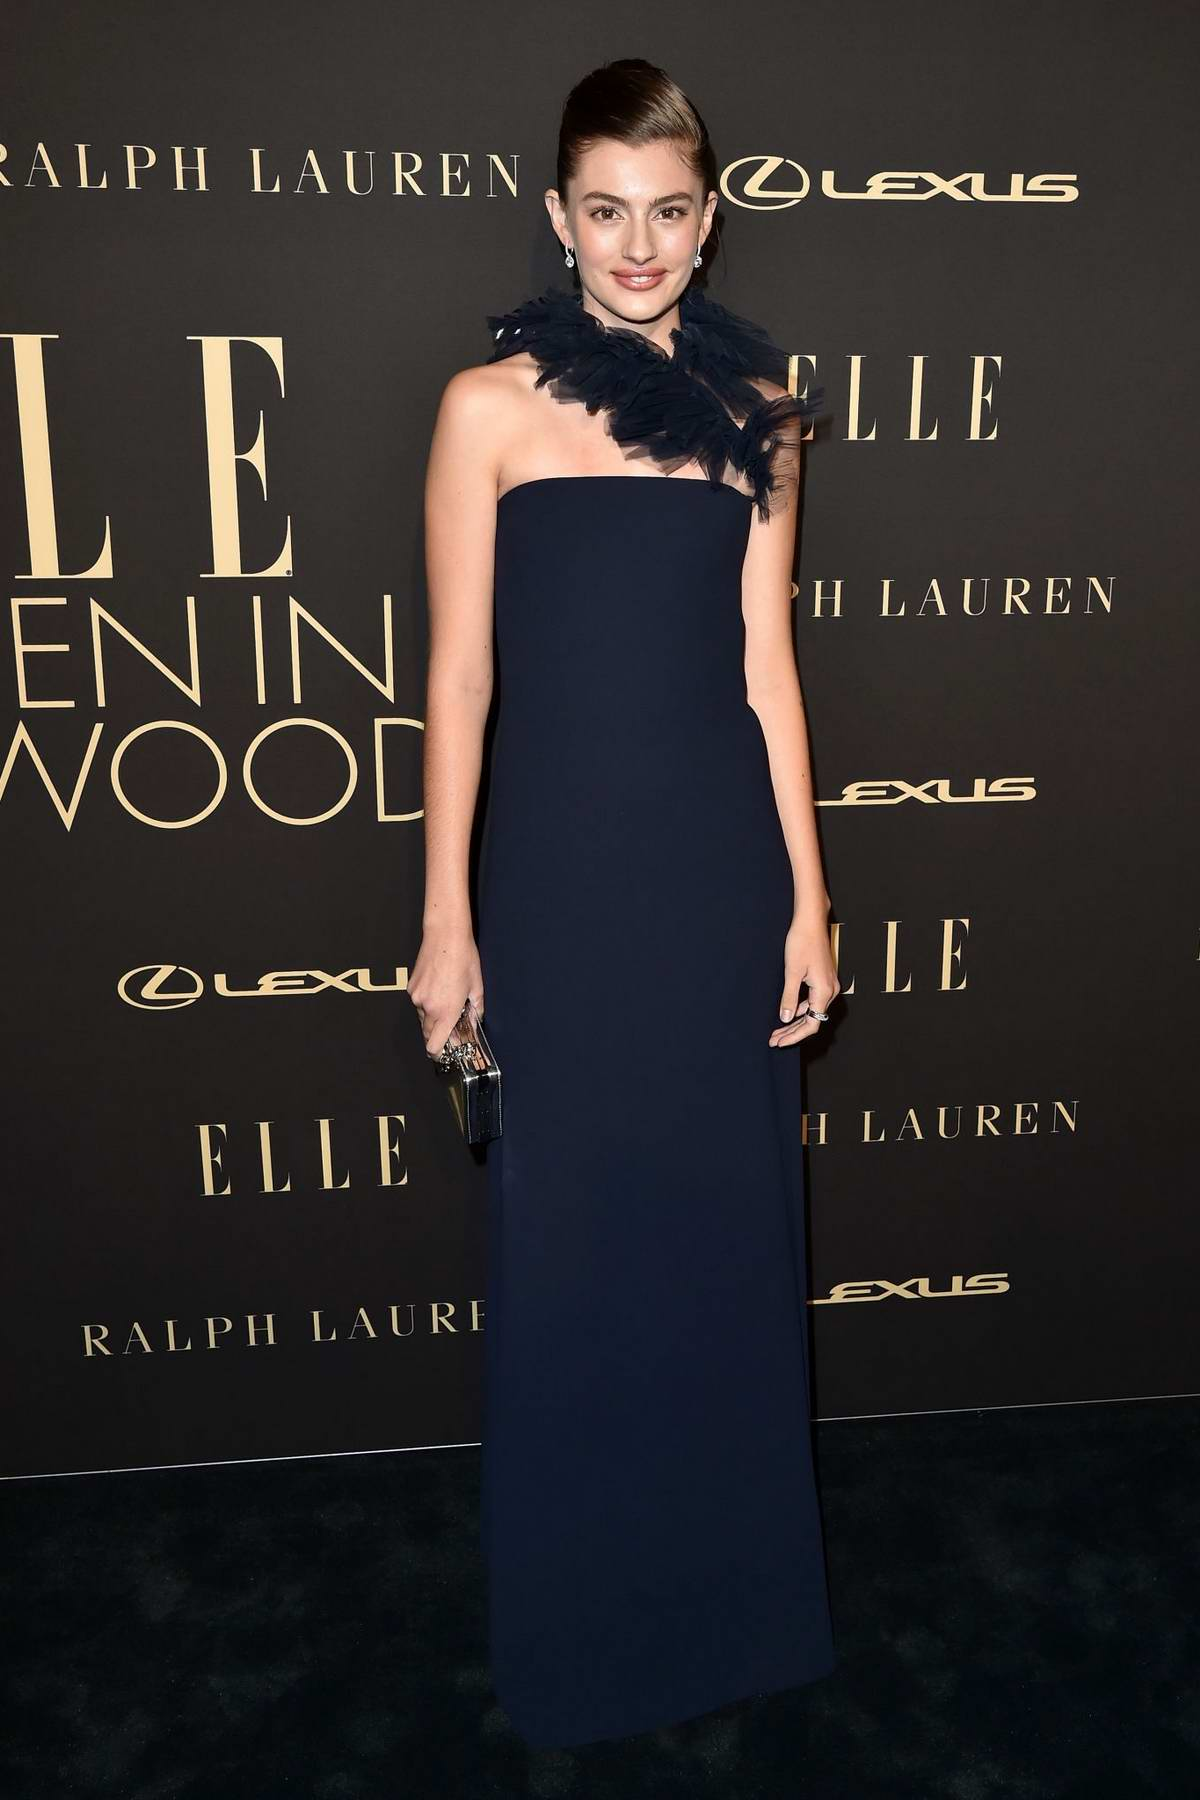 Diana Silvers attends ELLE's 26th Annual Women In Hollywood Celebration at The Four Seasons Hotel in Beverly Hills, California